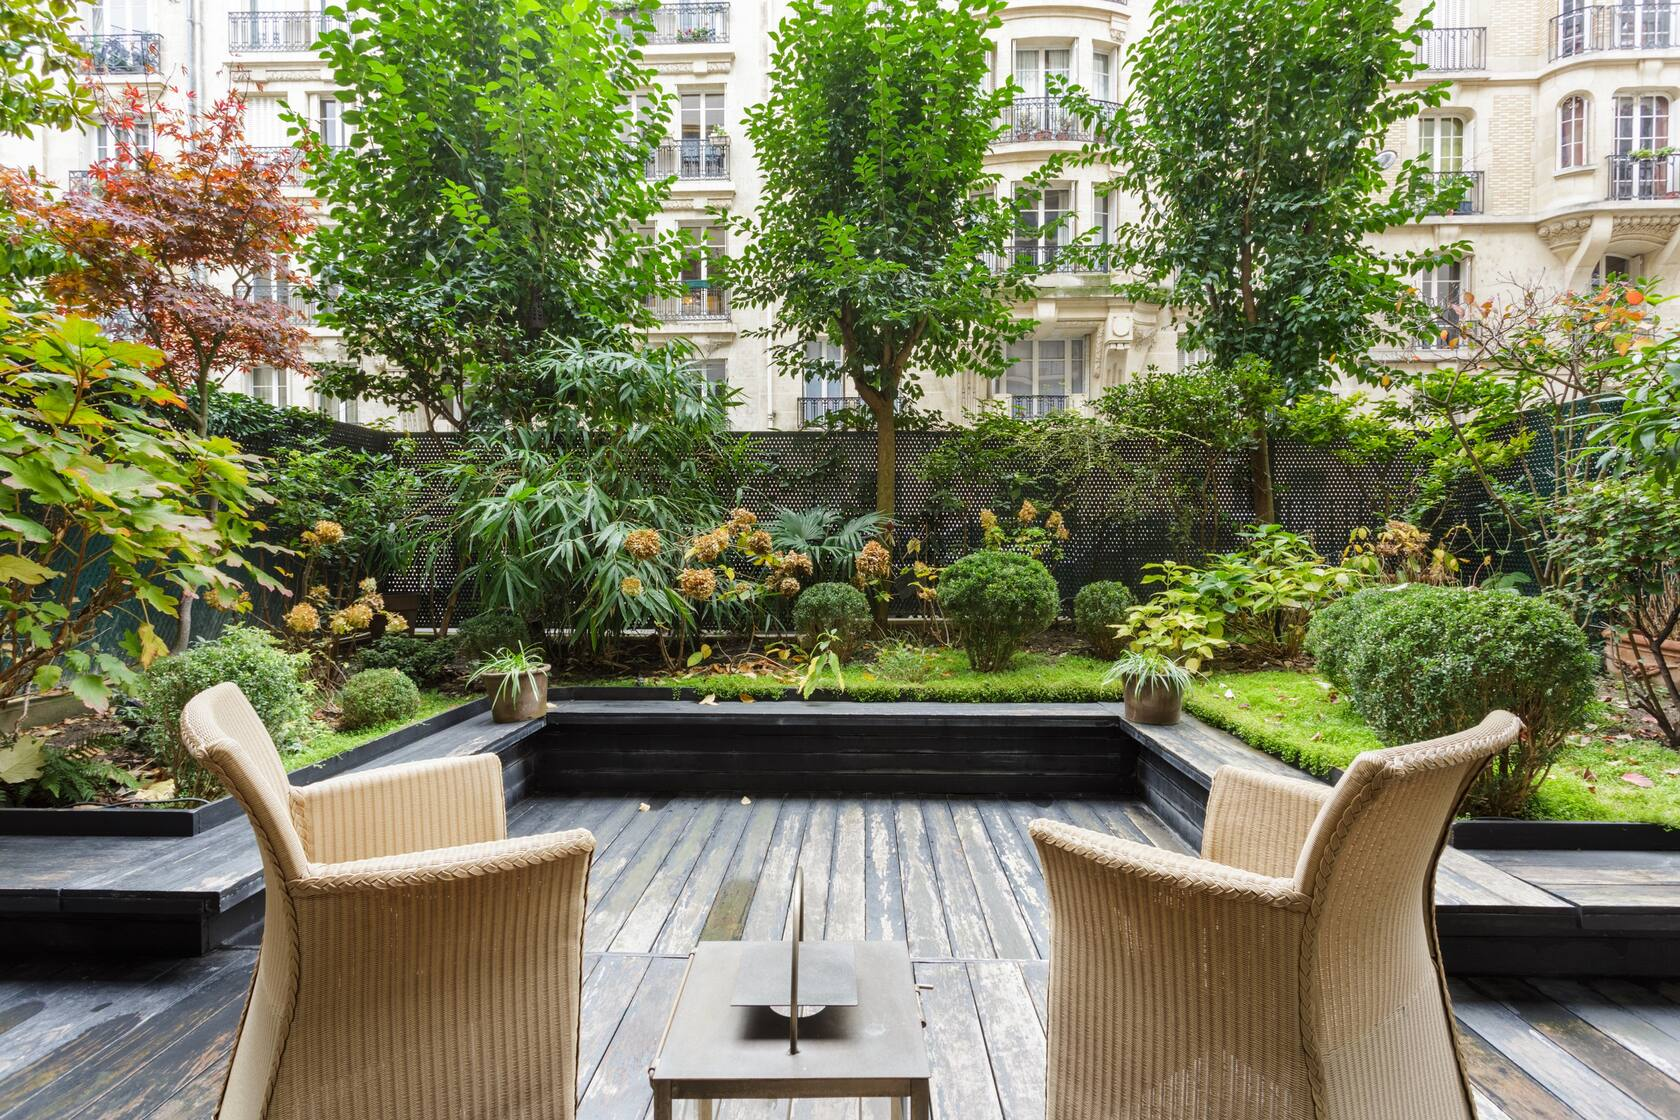 Photo of a garden patio at an apartment Airbnb in Paris.